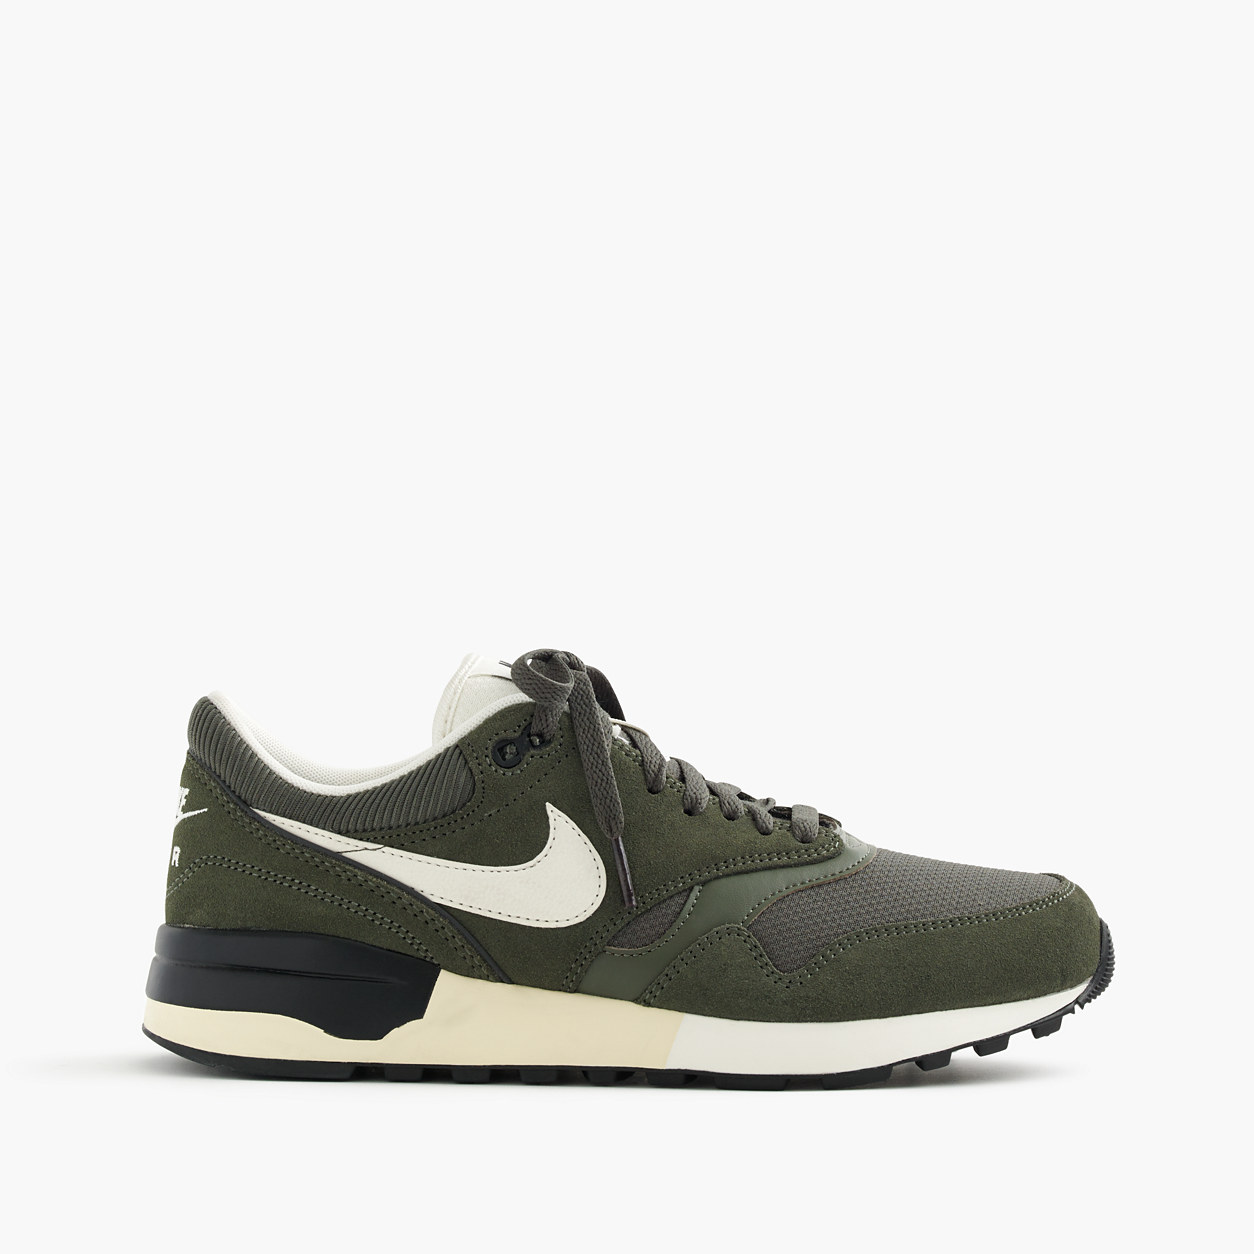 reputable site 99c4c cbddb ... low cost nike air odyssey sneakers in military green 0c07d 59588